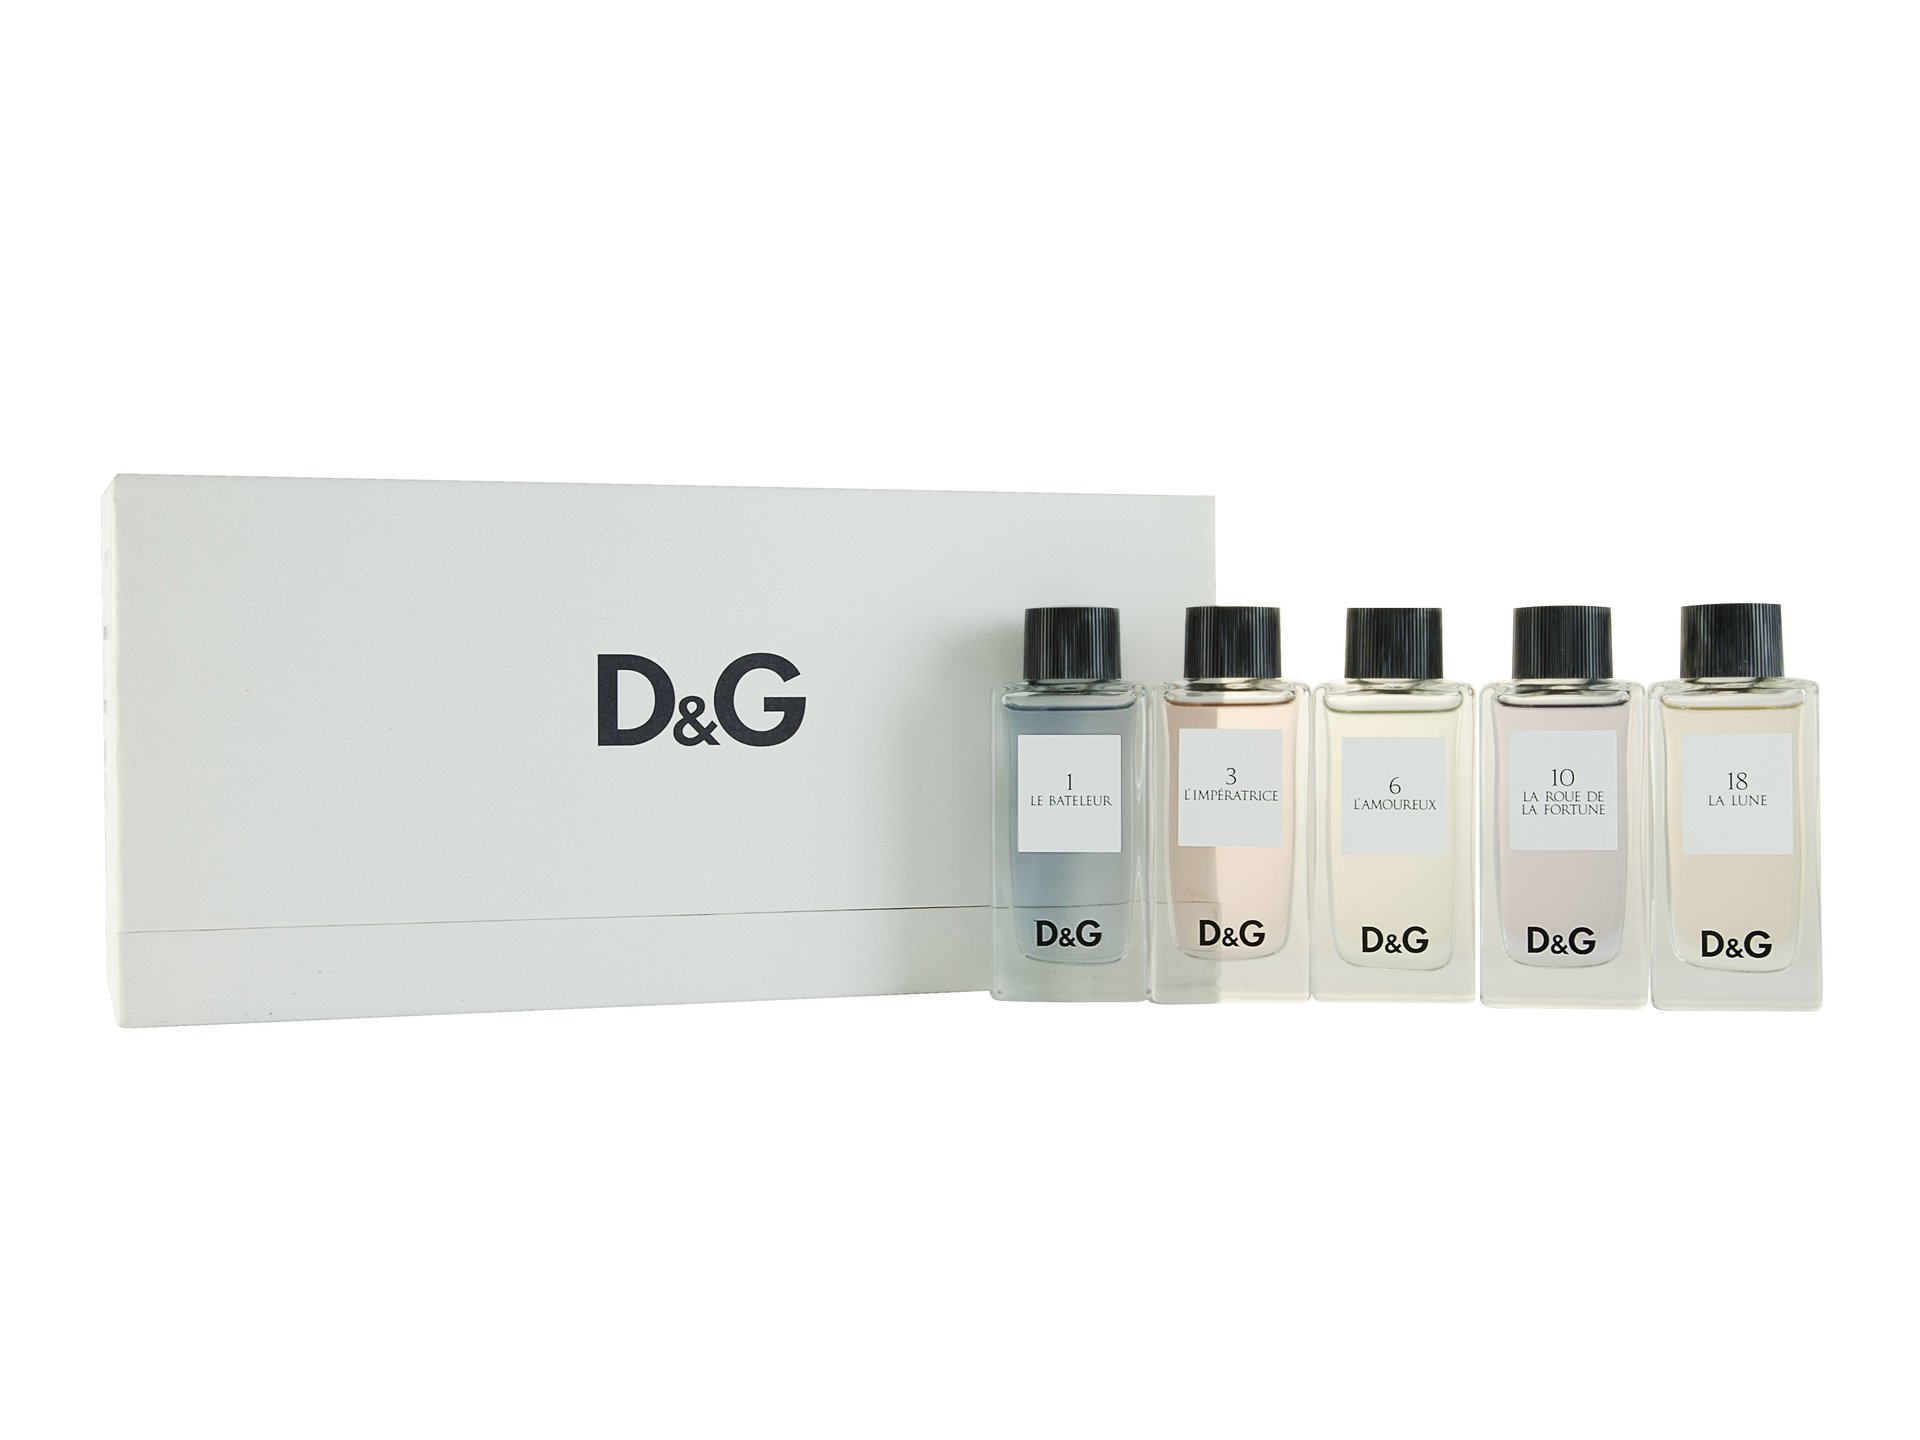 D&g The Collection Edt 5 X 20ml